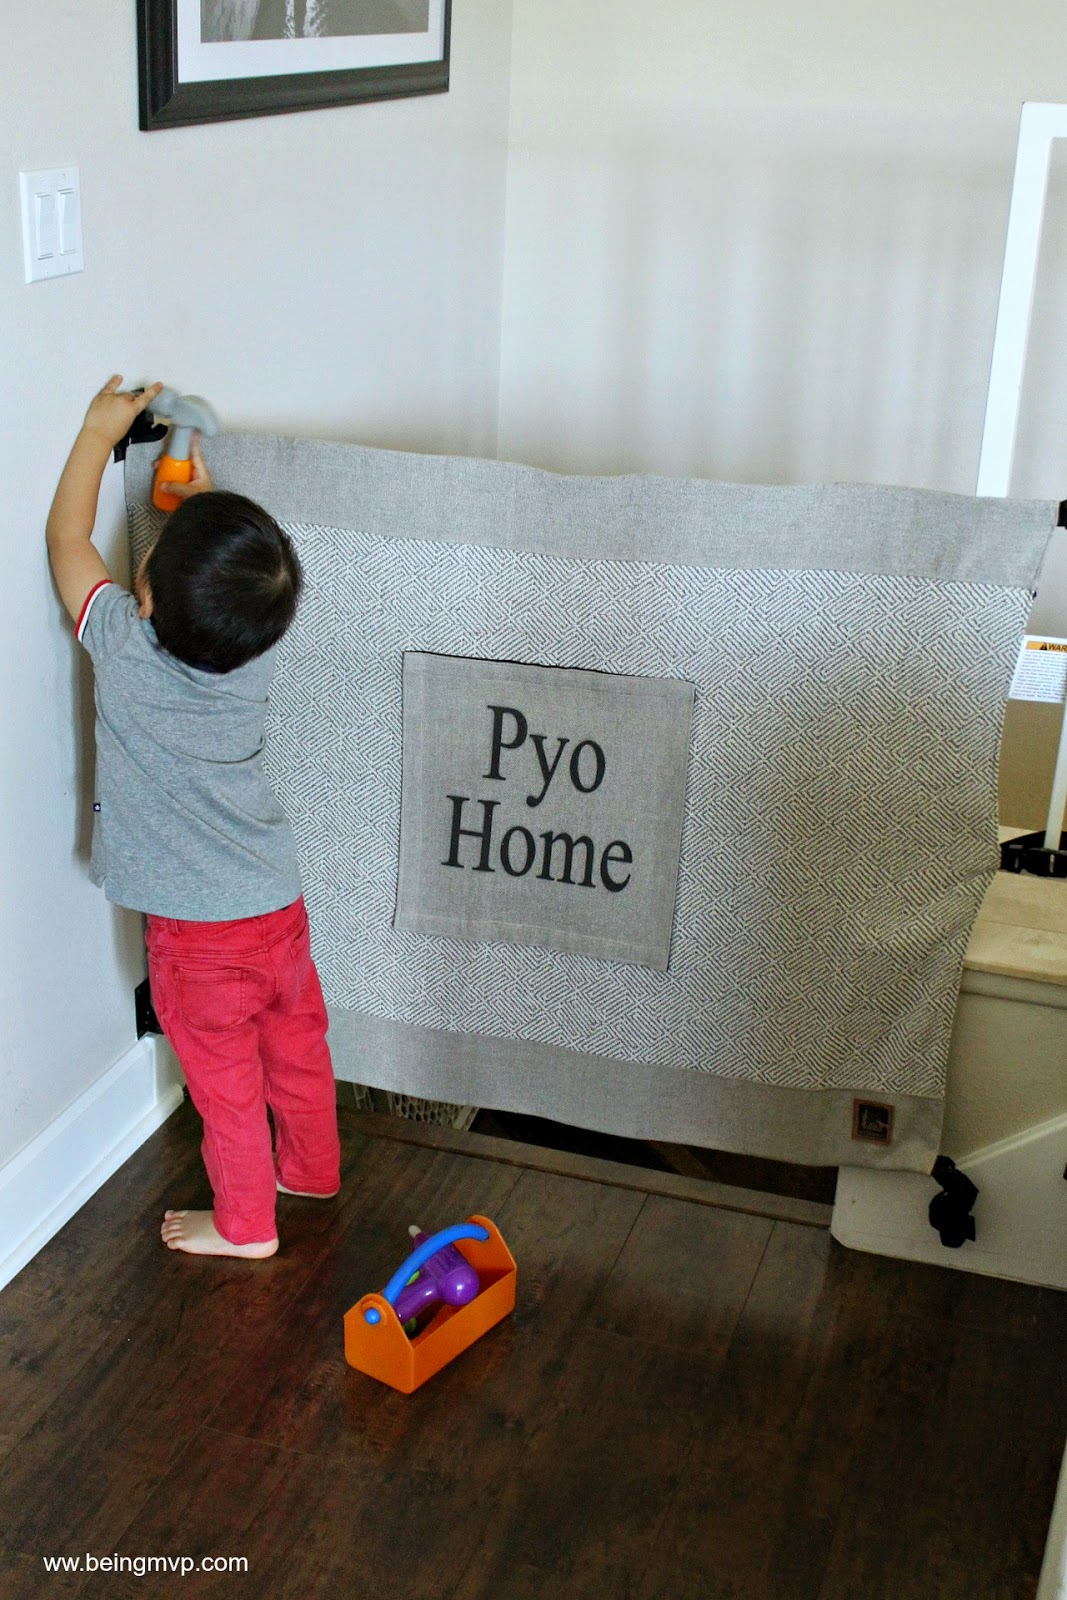 being MVP: Keeping Kids Safe with The Stair Barrier + #Giveaway